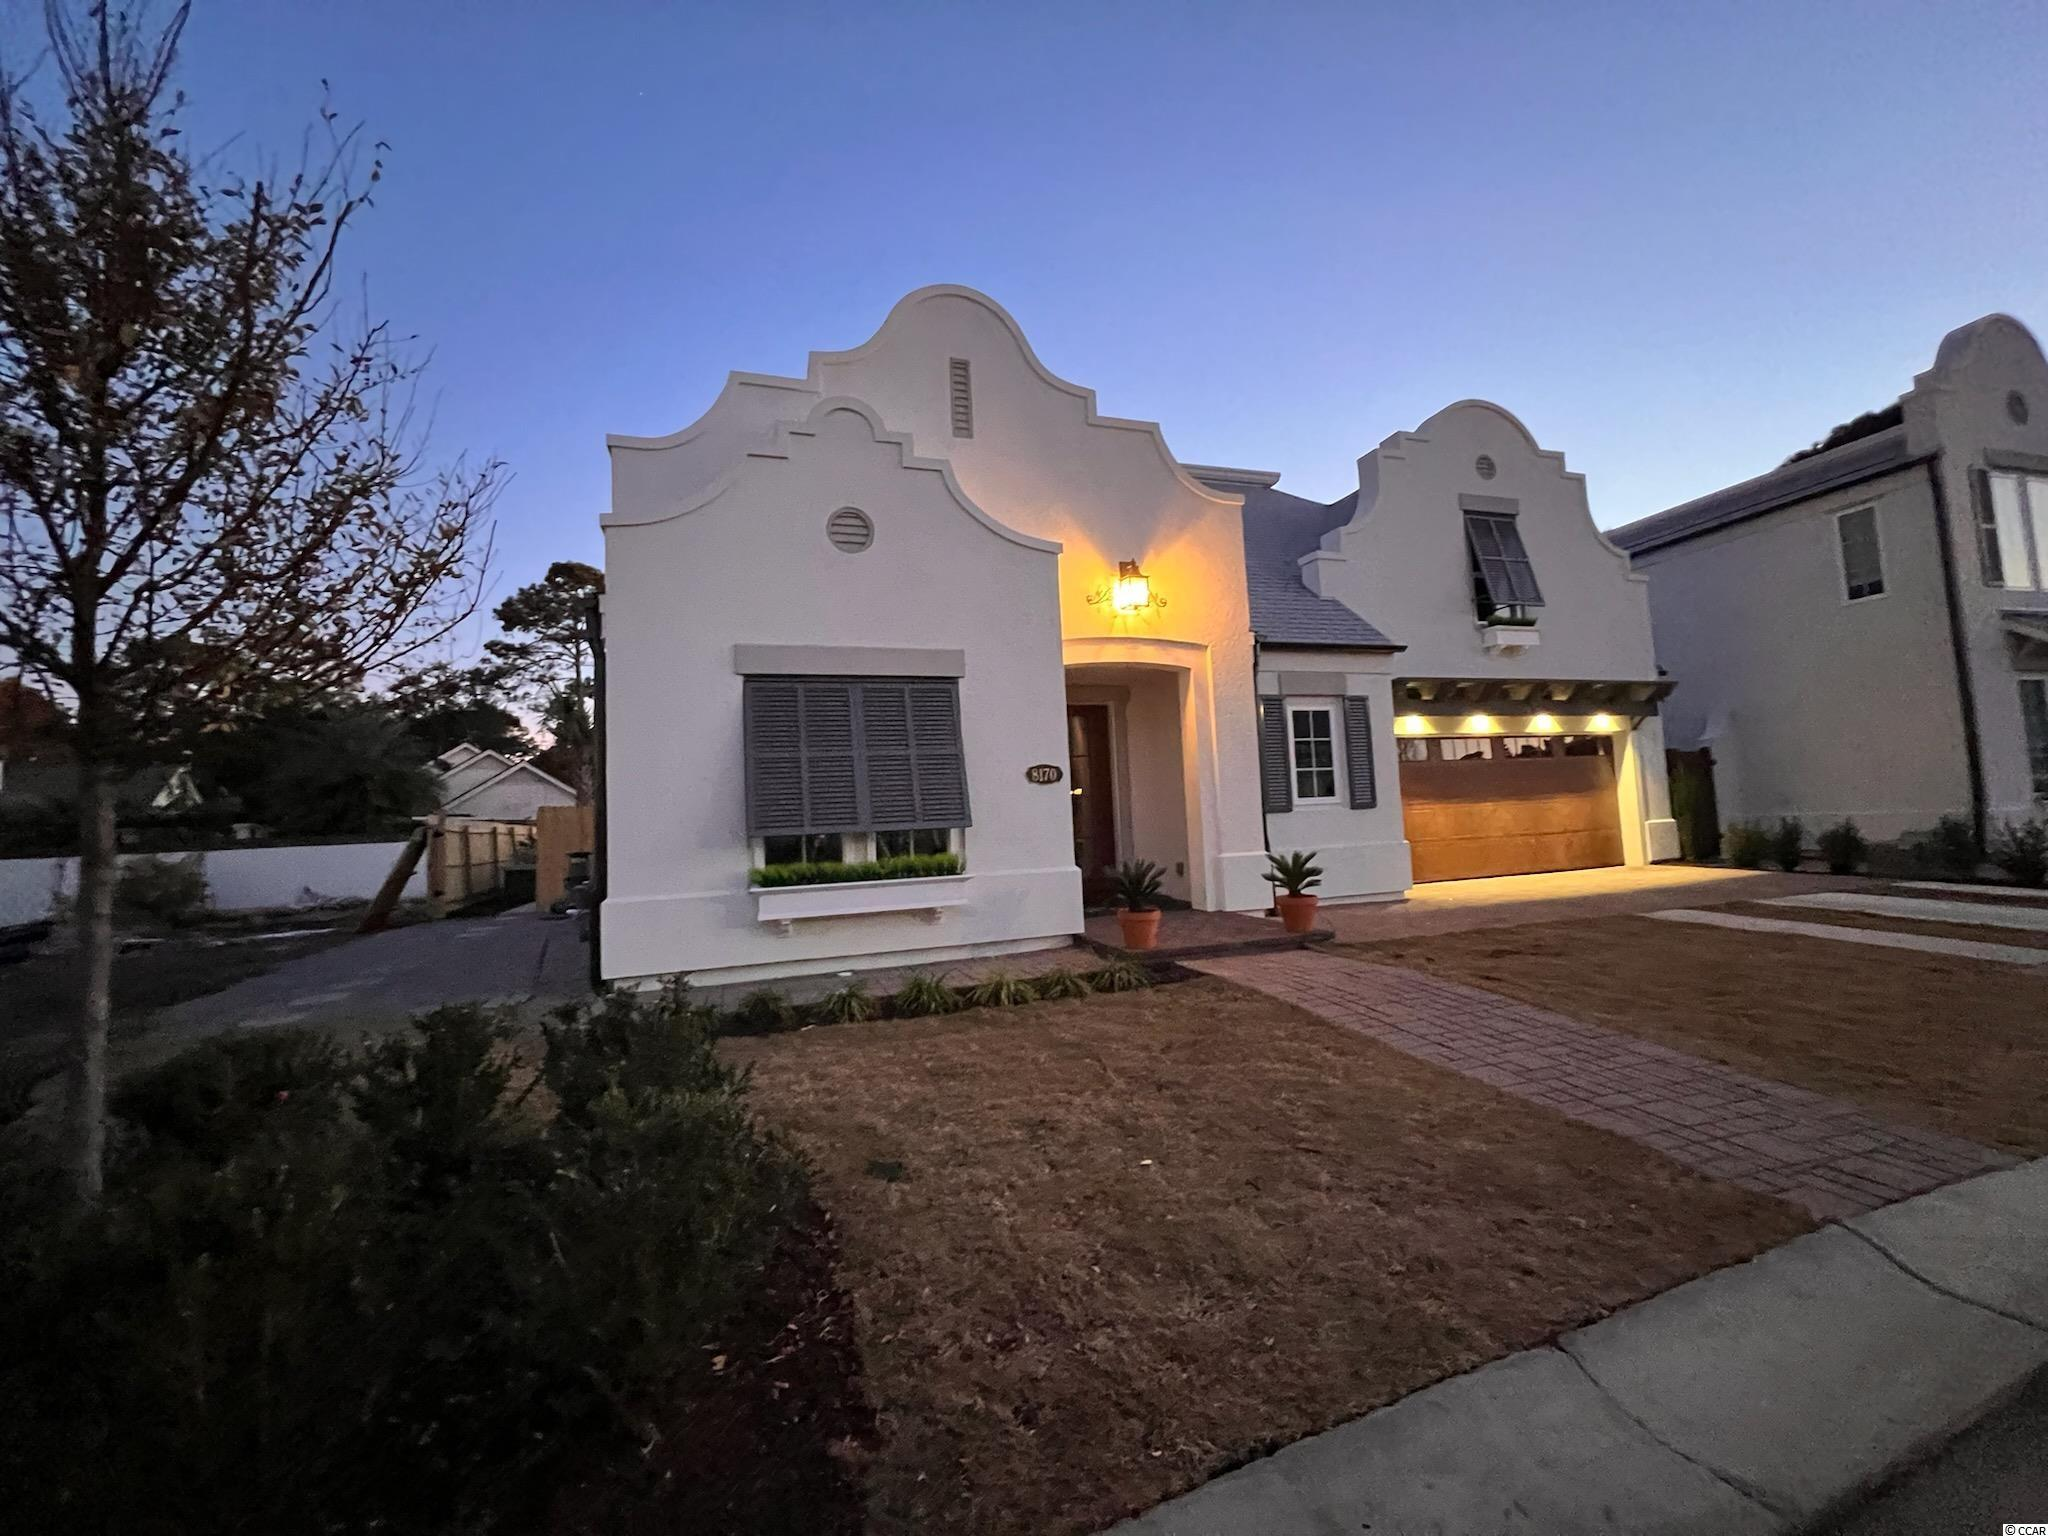 This gorgeous home CURRENTLY UNDER CONSTRUCTION is located in the exclusive neighborhood of 82 DUNES. It's the premier section of Myrtle Beach neighboring Grande Dunes, and is a short walk to the beach. Near by are some of the areas best restaurants, shopping and Medical facilities. This special Boutique Community has only 25 home-sites and offers natural gas. It features 4 bedrooms and 3.5 bathrooms plus a wonderful outdoor  area with pool to gather with family and friends where you might watch your favorite team win a big game and many custom upgrades. PLEASE NOTE THAT THE ASSOCIATED PICTURES WITH THIS LISTING ARE NOT NECESSARILY REPRESENTITIVE TO THE ACTUAL HOME AND ARE USED FOR MARKETING PURPOSES ONLY  The Master Suite includes a spacious bedroom area. The En Suite includes a large walk in custom closet, his and hers vanities, walk in shower. There is plenty of room for family and friends to visit with the three additional bedrooms. You could also consider converting one of the rooms to a home office. The Kitchen features quartz countertops, upgraded appliances, solid full overlay cabinets with soft close doors and drawers. There is a separate island for eating and entertaining and pantry. The back yard is completed with a beautiful 10'x17' salt water swimming pool and summer kitchen with a gas grill and fridge! 82 Dunes is the fastest selling boutique community in Myrtle Beach. Call Kevin Skelley today to set up your private showing. Don't miss this opportunity!  See Associated Docs for plans